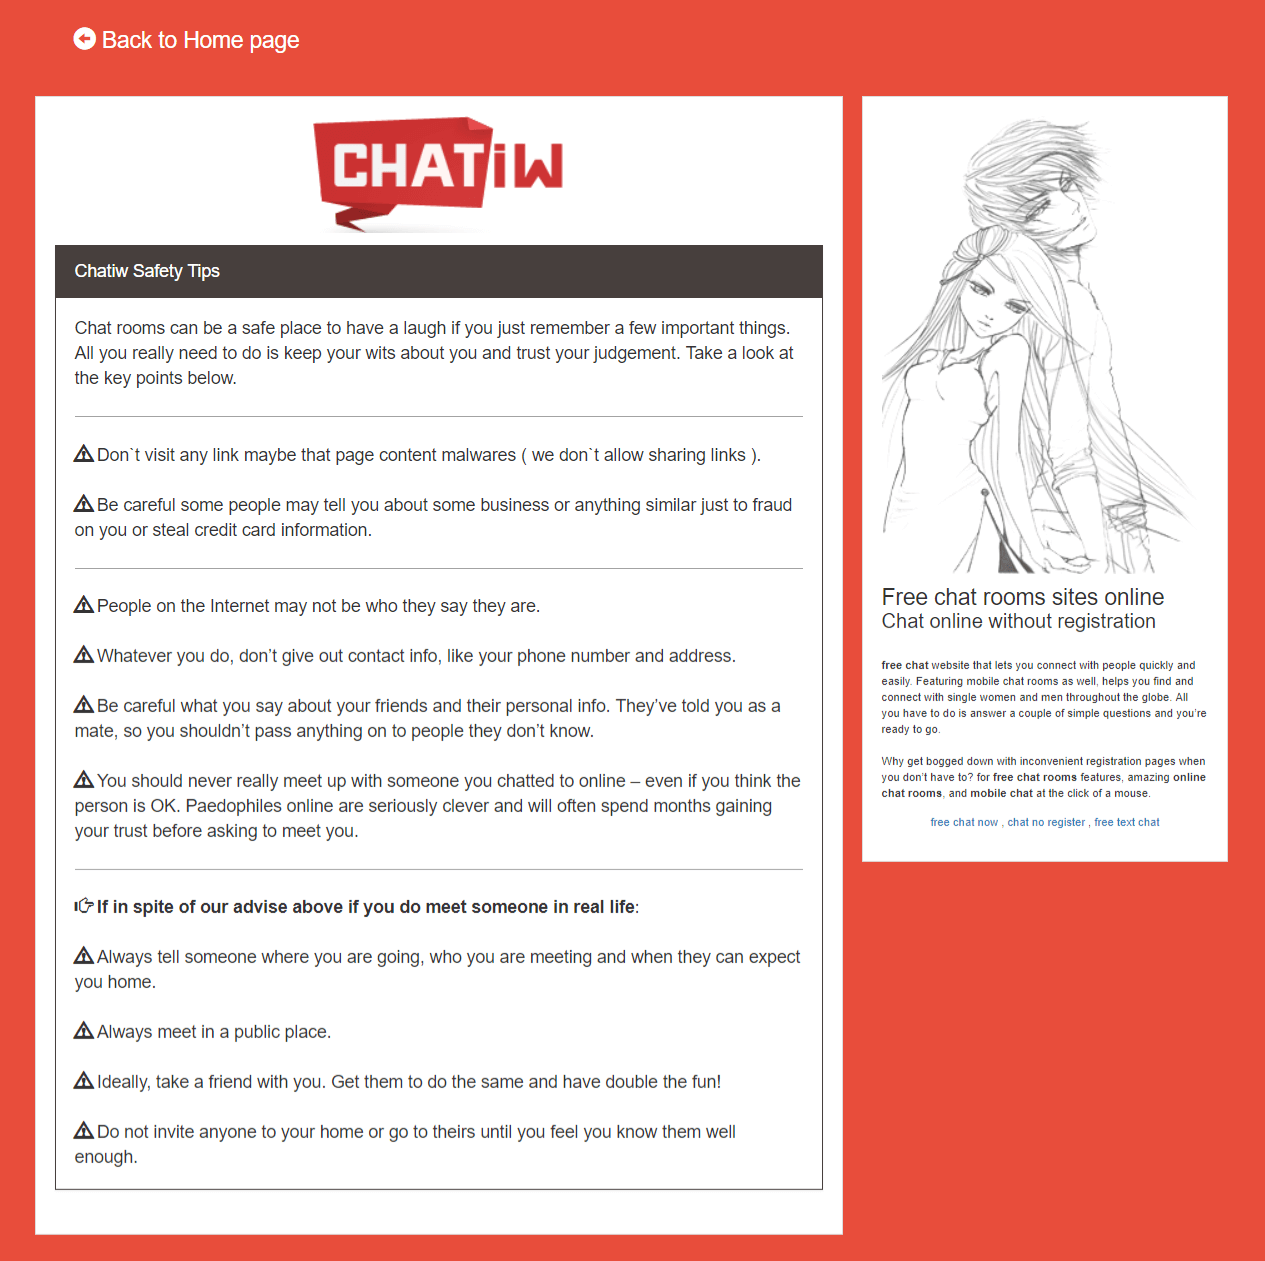 Chatiw Safety Tips